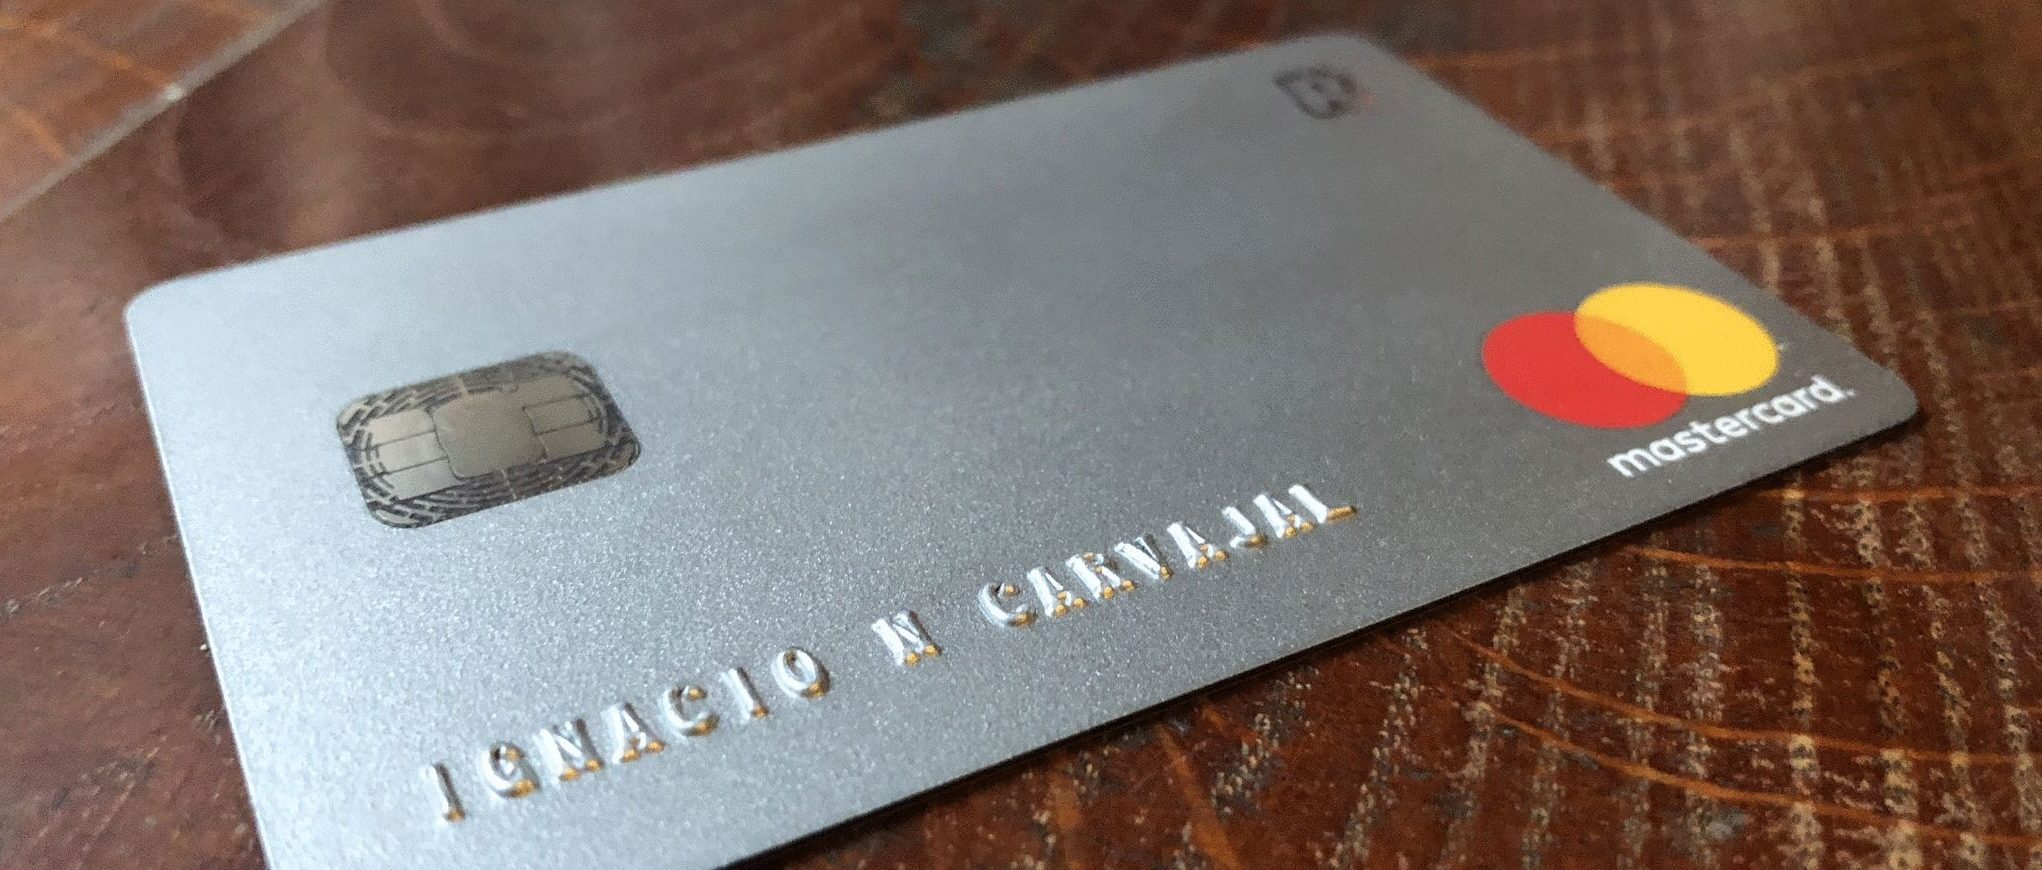 revolut premium, Revolut Premium & Revolut Metal For Digital Nomads, Are They Worth The Price?, Micropreneur Life, Micropreneur Life